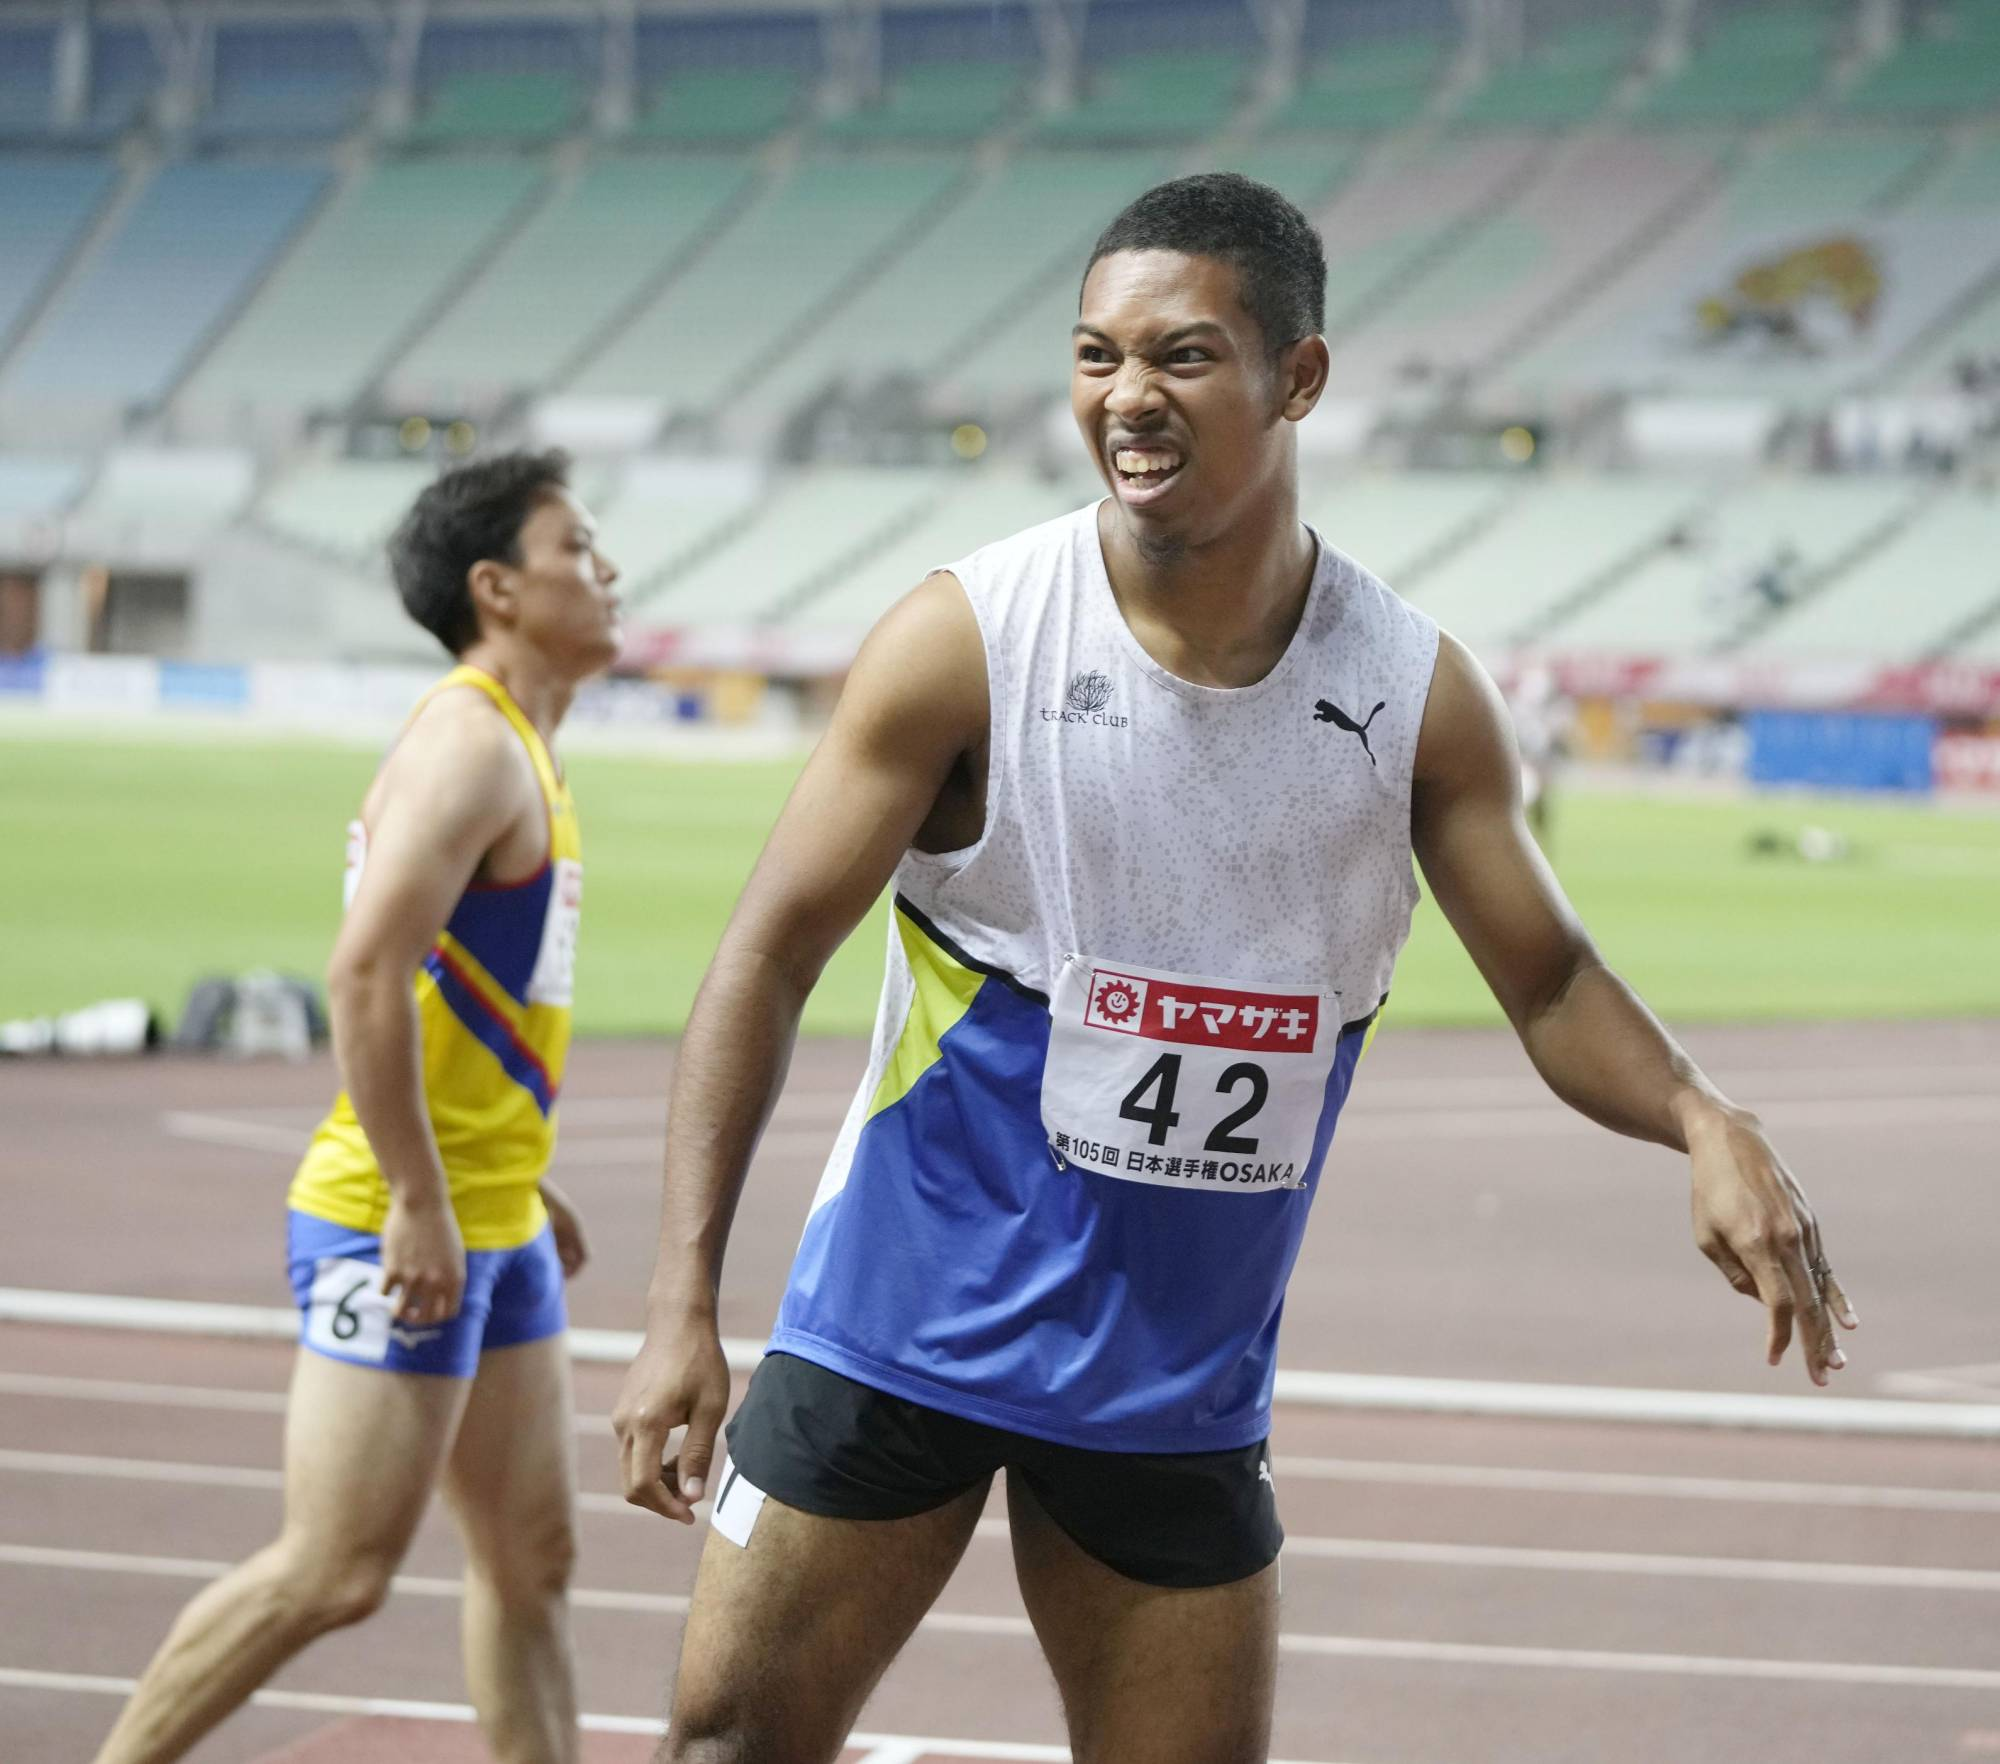 Former national 100-meter record holder Abdul Hakim Sani Brown could still qualify for the 200 despite pulling out of the event at the national championships in Osaka. | KYODO